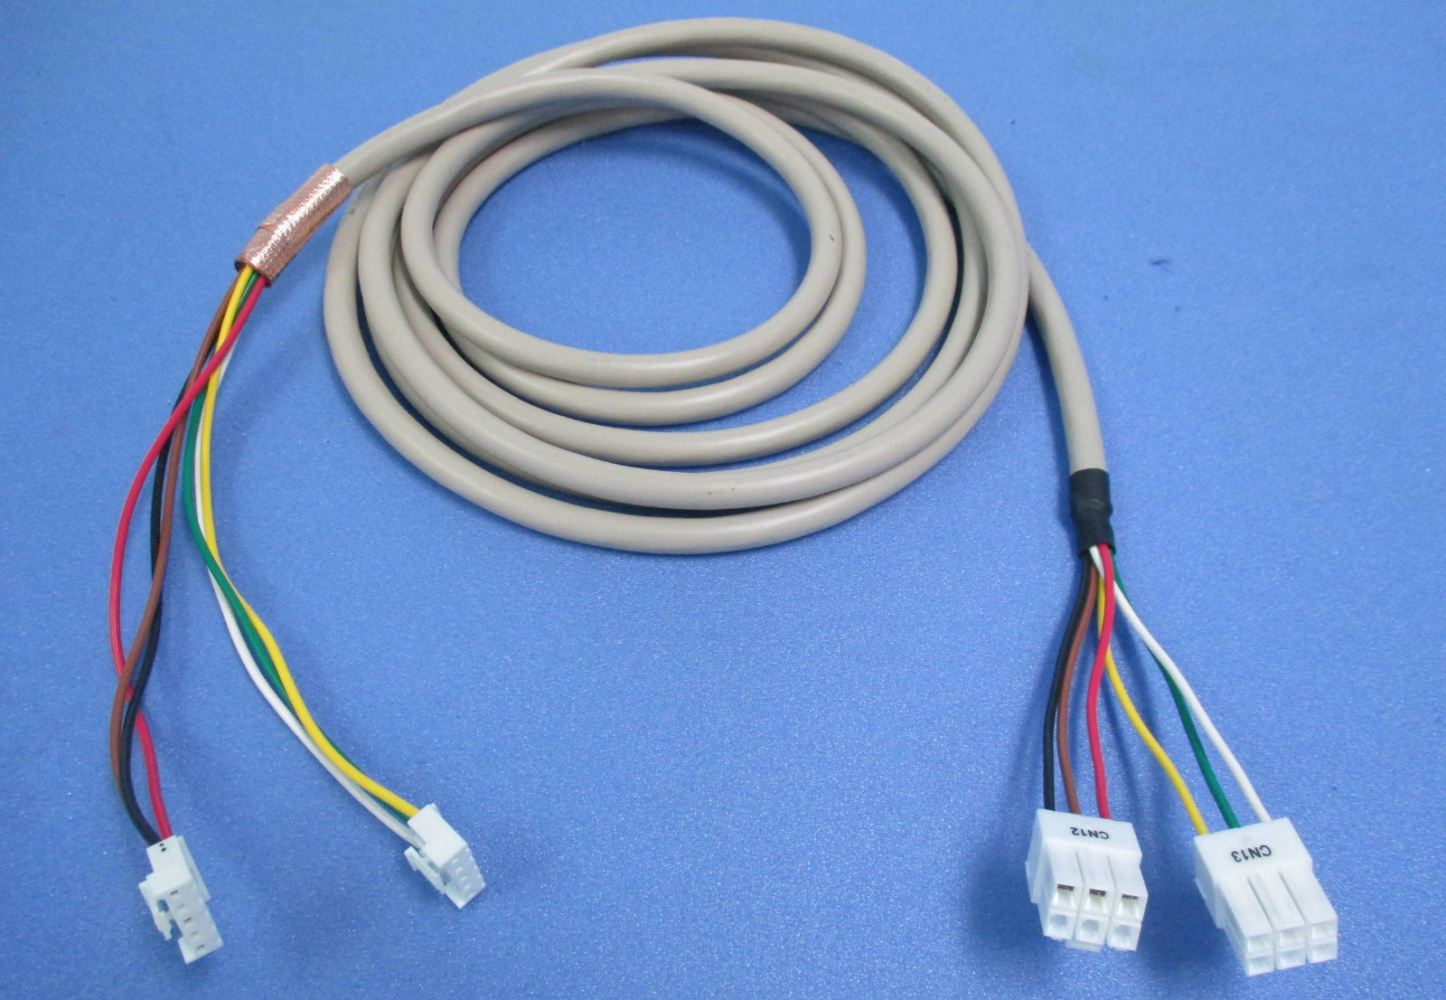 MEDICAL AND HEALTHCARE WIRE HARNESS